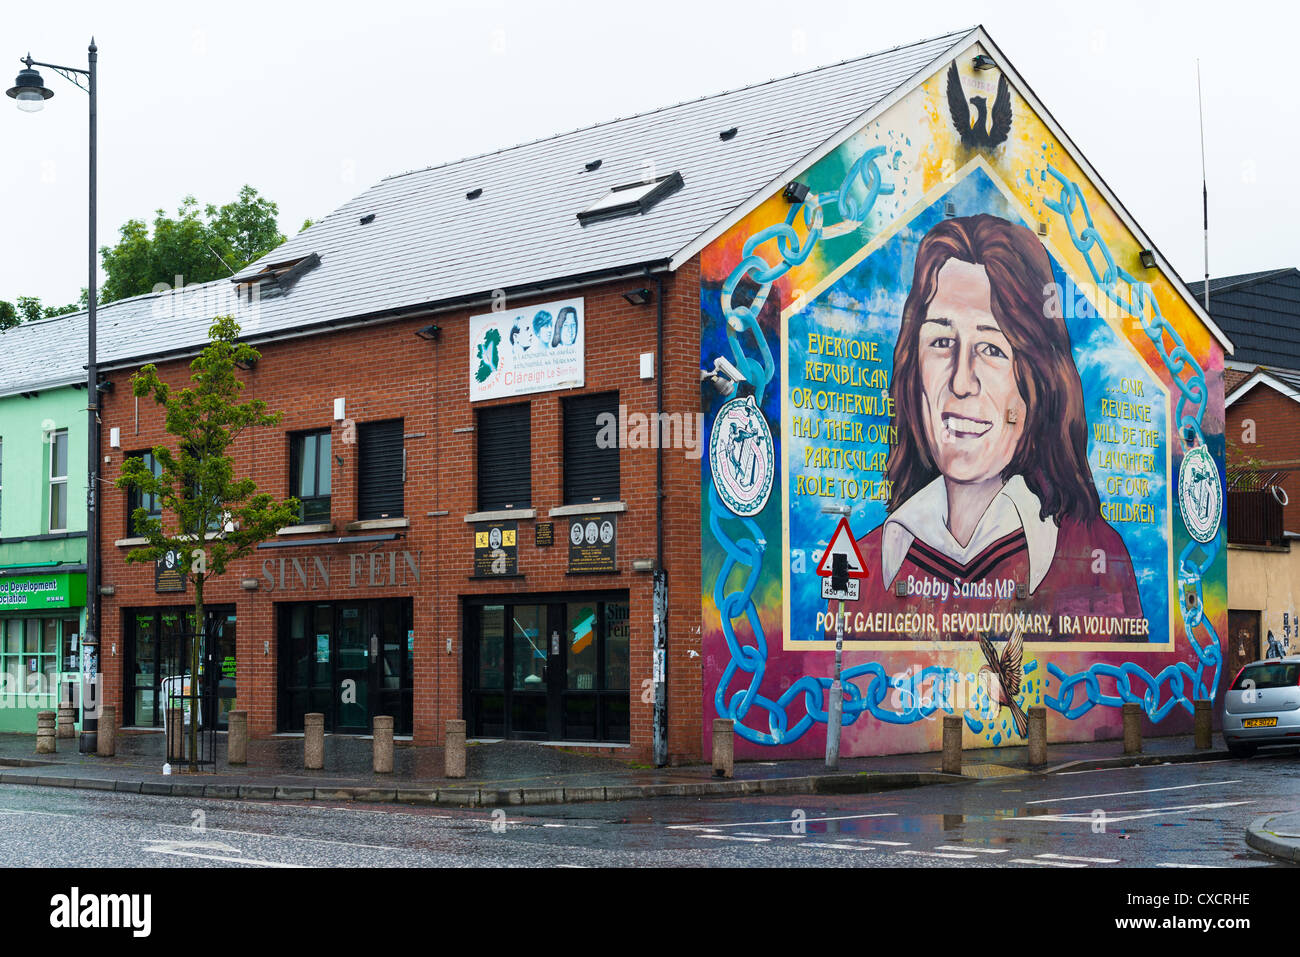 Sinn Fein constituency office with mural of Bobby Sand on Catholic Falls road, Belfast in Northern Ireland. - Stock Image